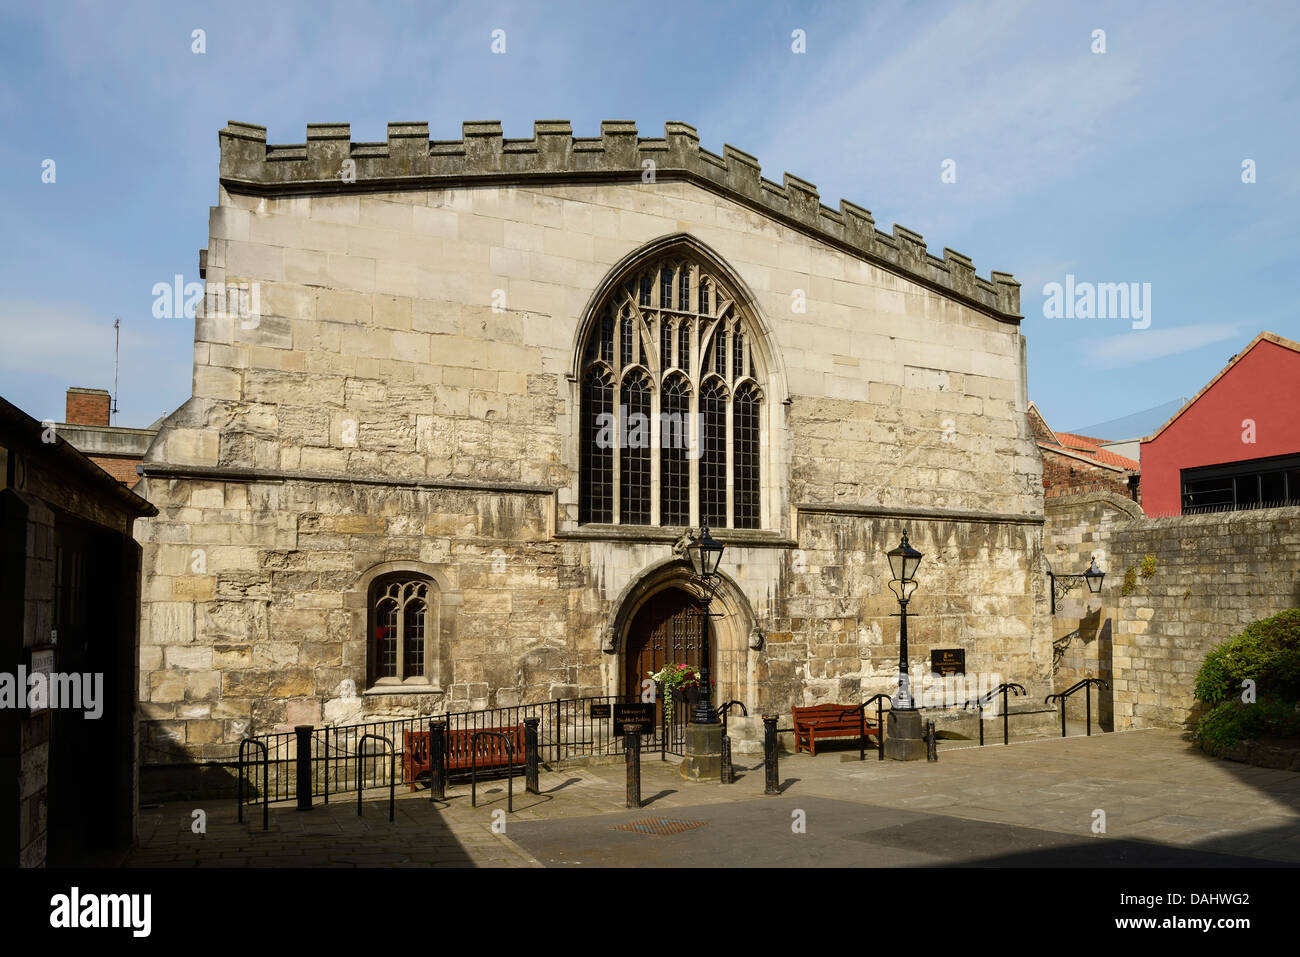 The rear of the Guildhall in York city centre - Stock Image